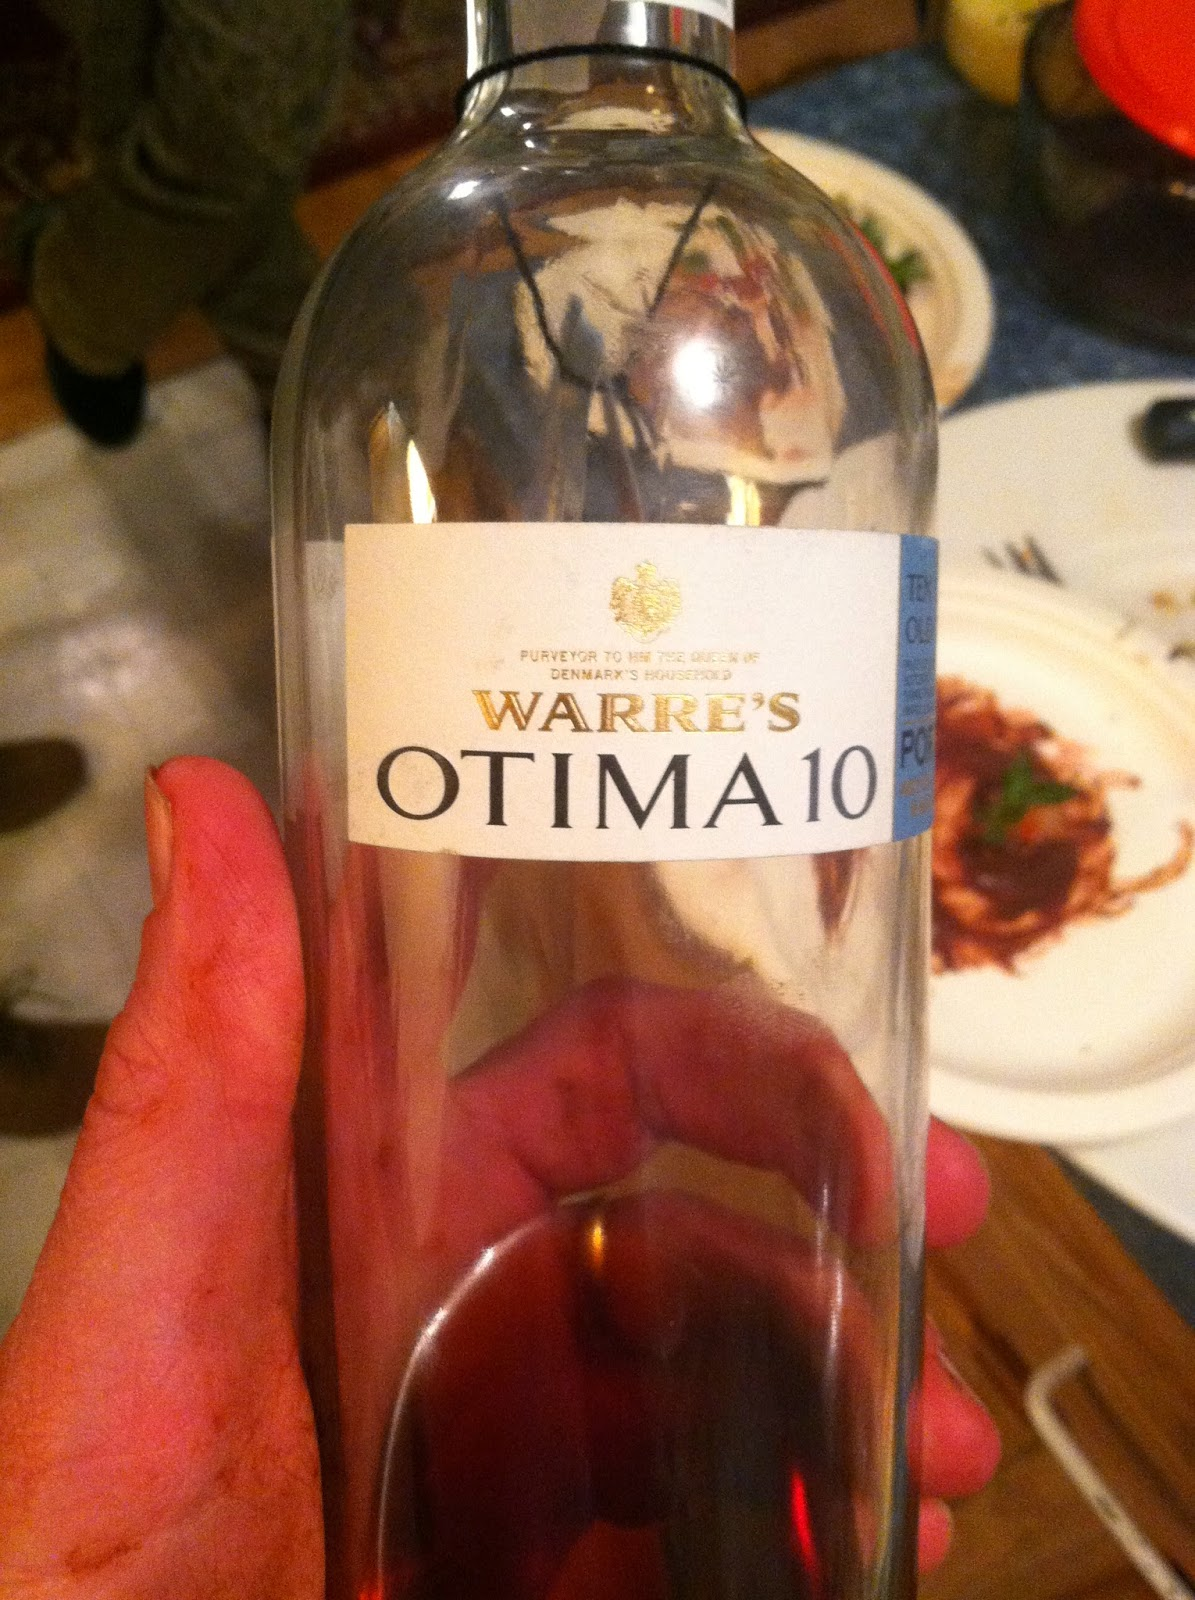 Warre's Otima 10 year old tawny, served with Cooking Chat's Chocolate Covered Strawberries.